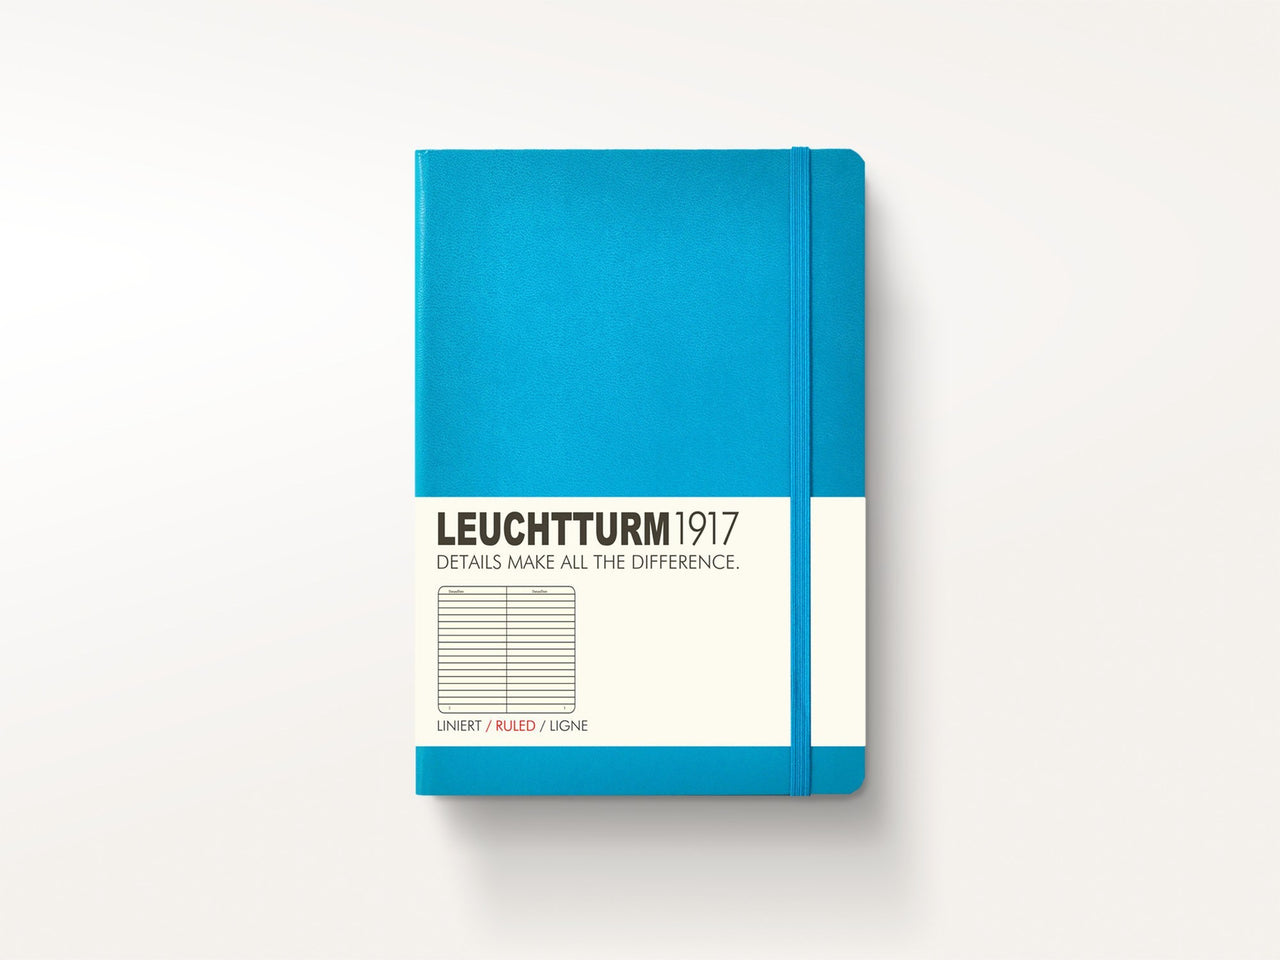 Notebooks - Leuchtturm 1917 Hardcover Notebook Azure - Leuchtturm 1917 - 1